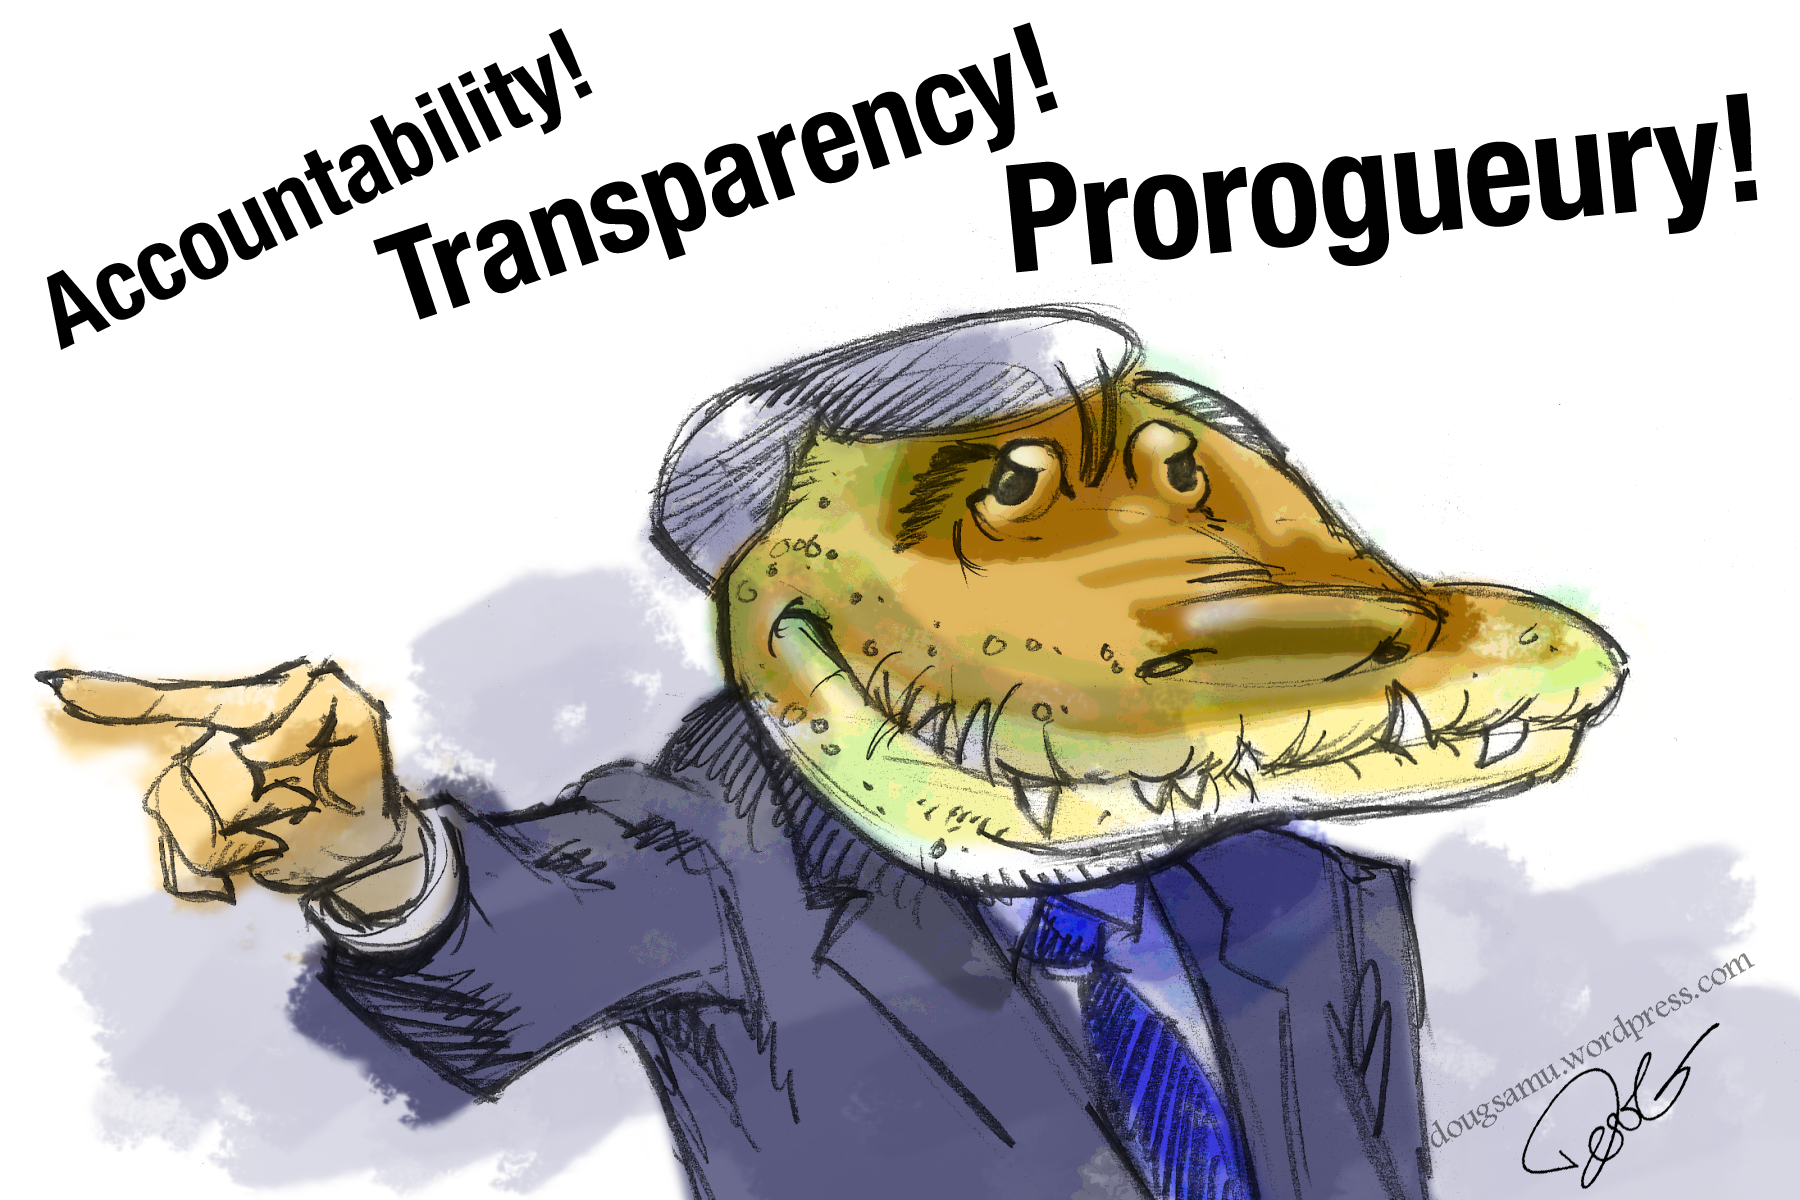 http://dougsamu.files.wordpress.com/2009/12/harper-crocodile.png